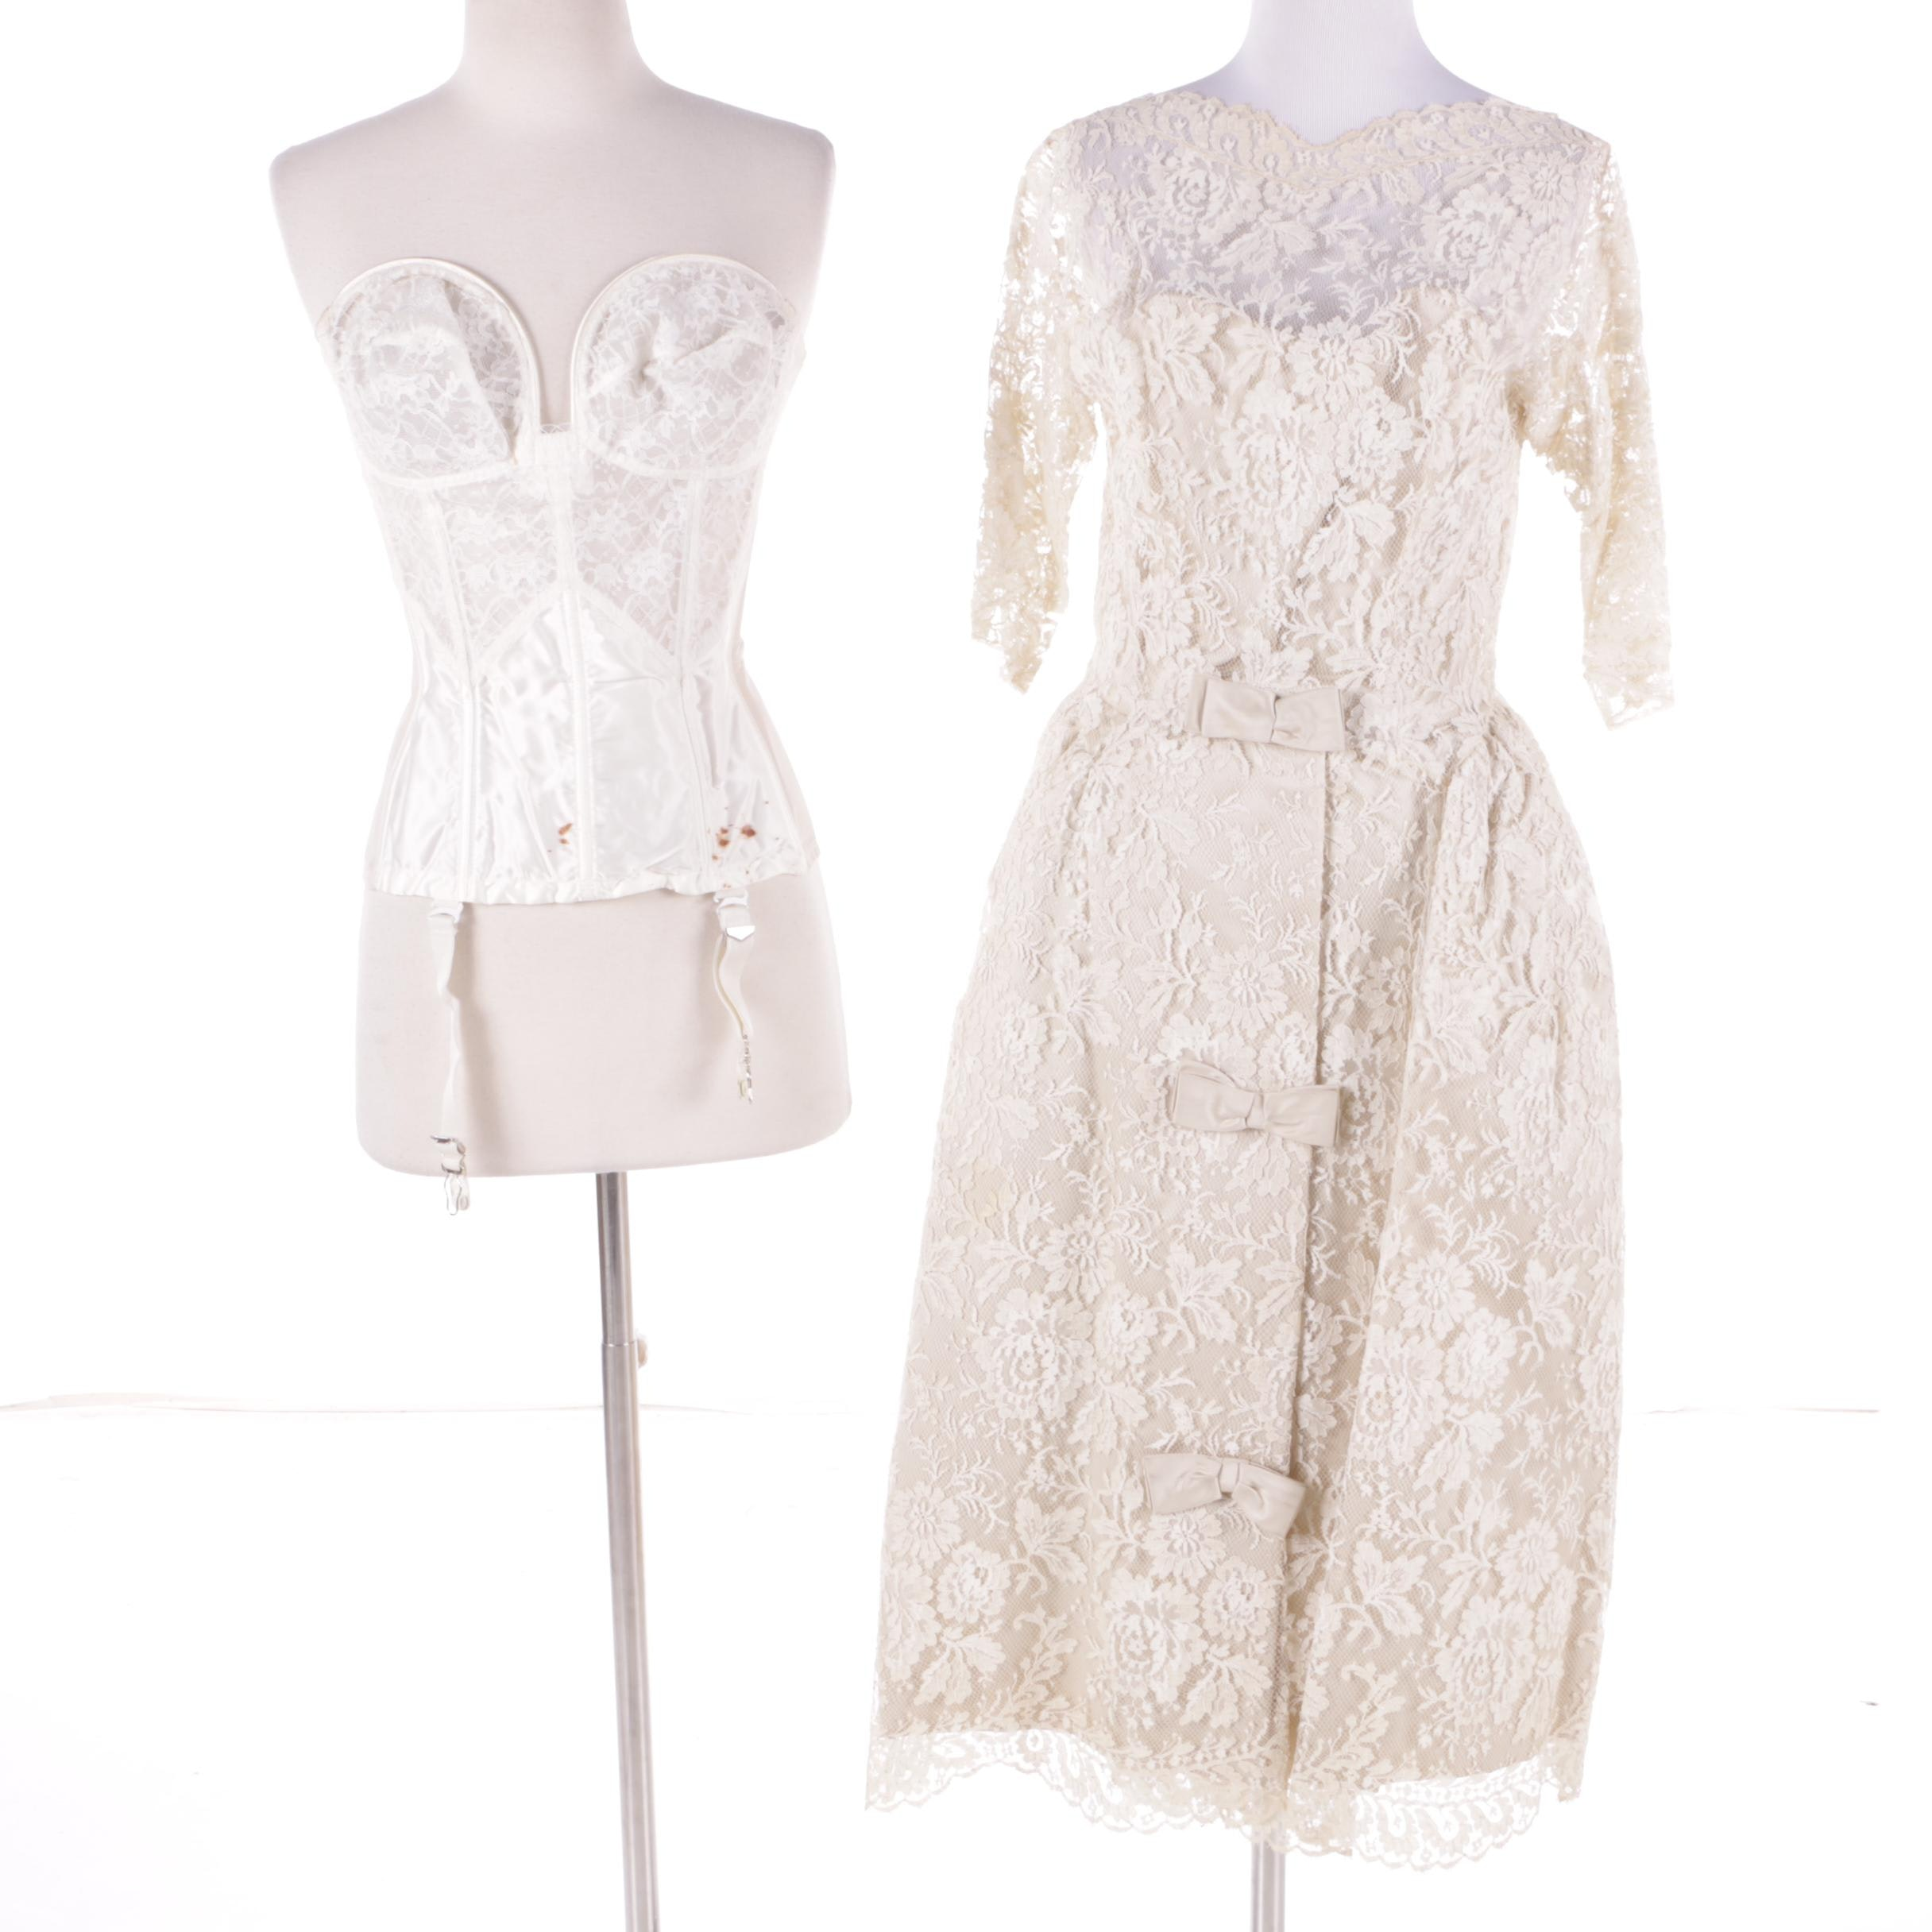 1950s Vintage Marshall Field & Company Wedding Dress and Corset